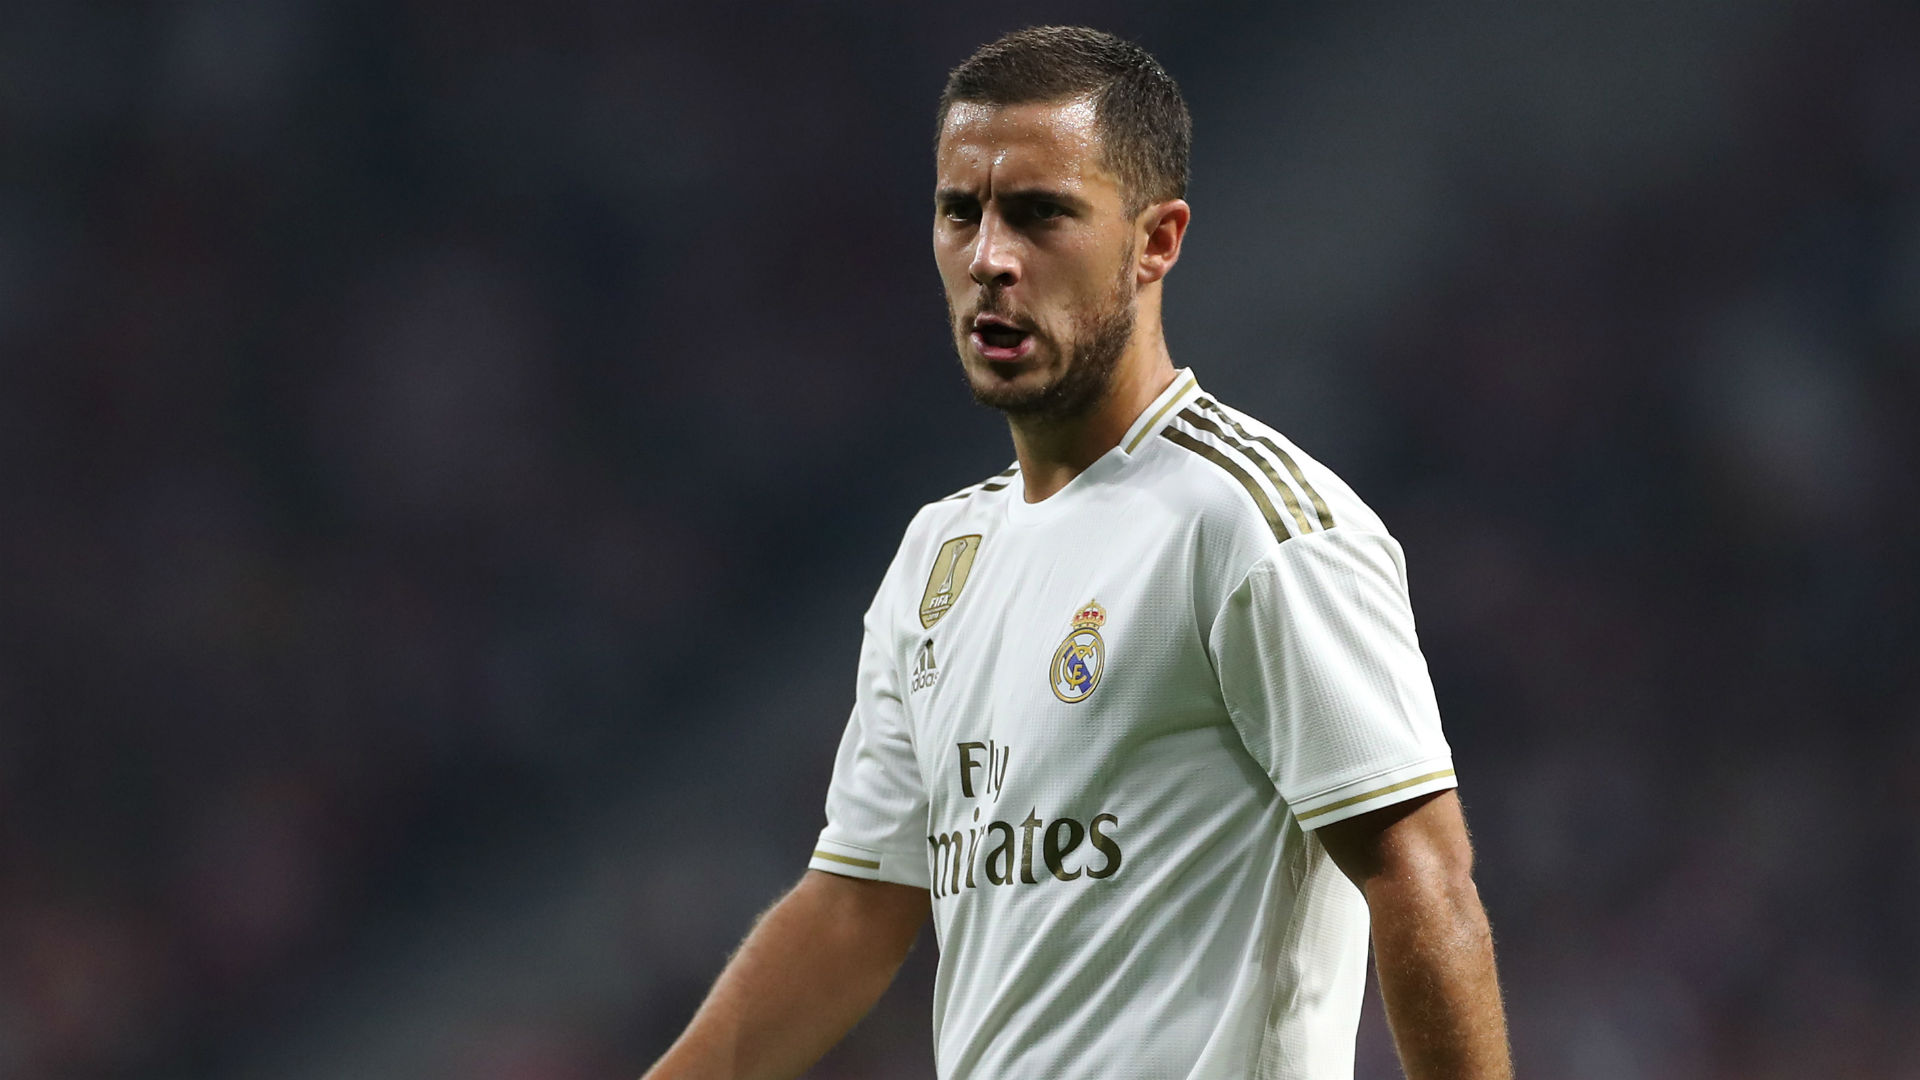 I still have to prove I can be a galactico, says Real Madrid's Hazard